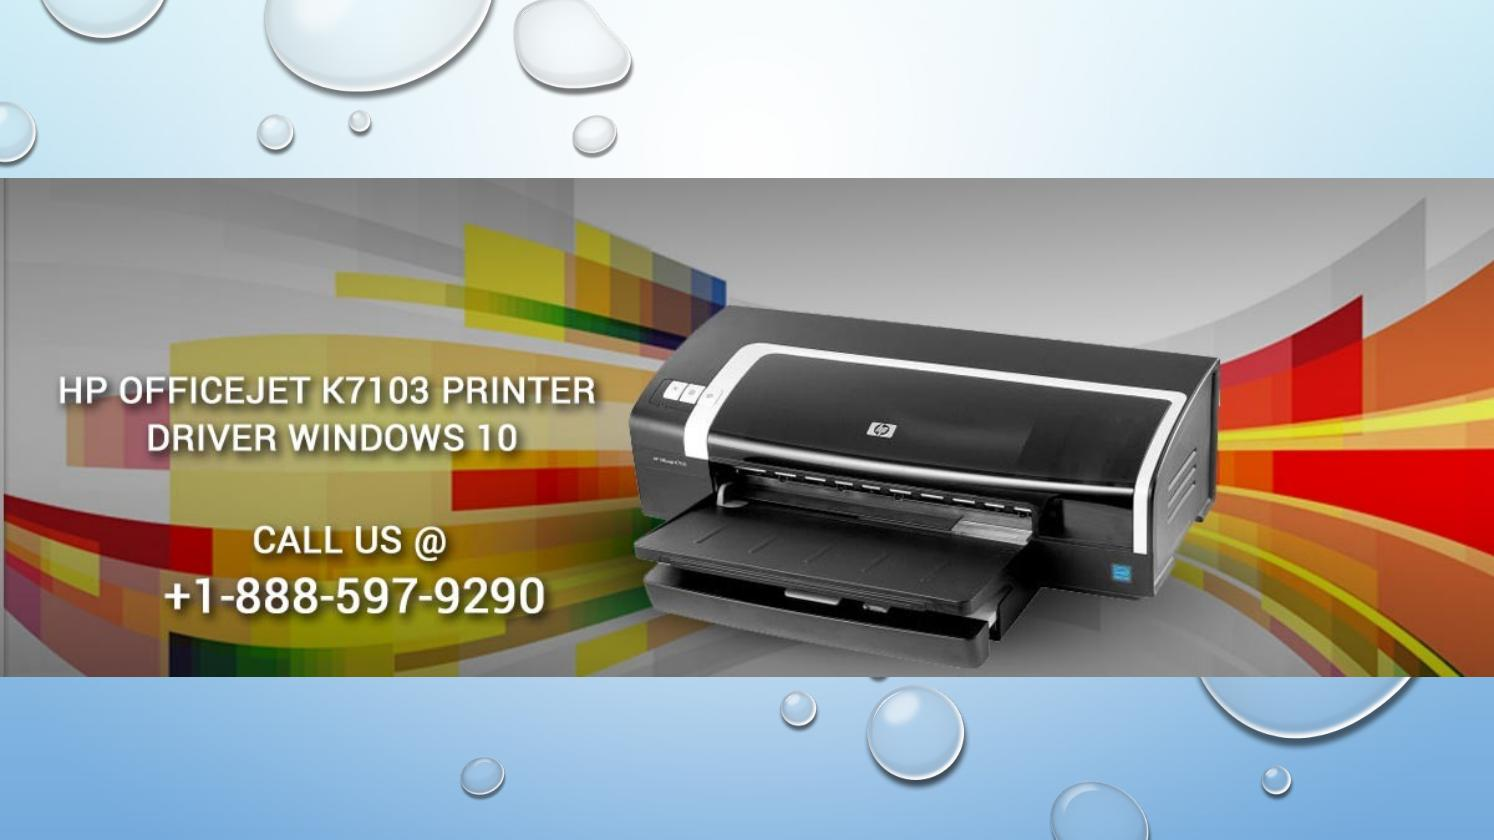 driver imprimante hp officejet k7103